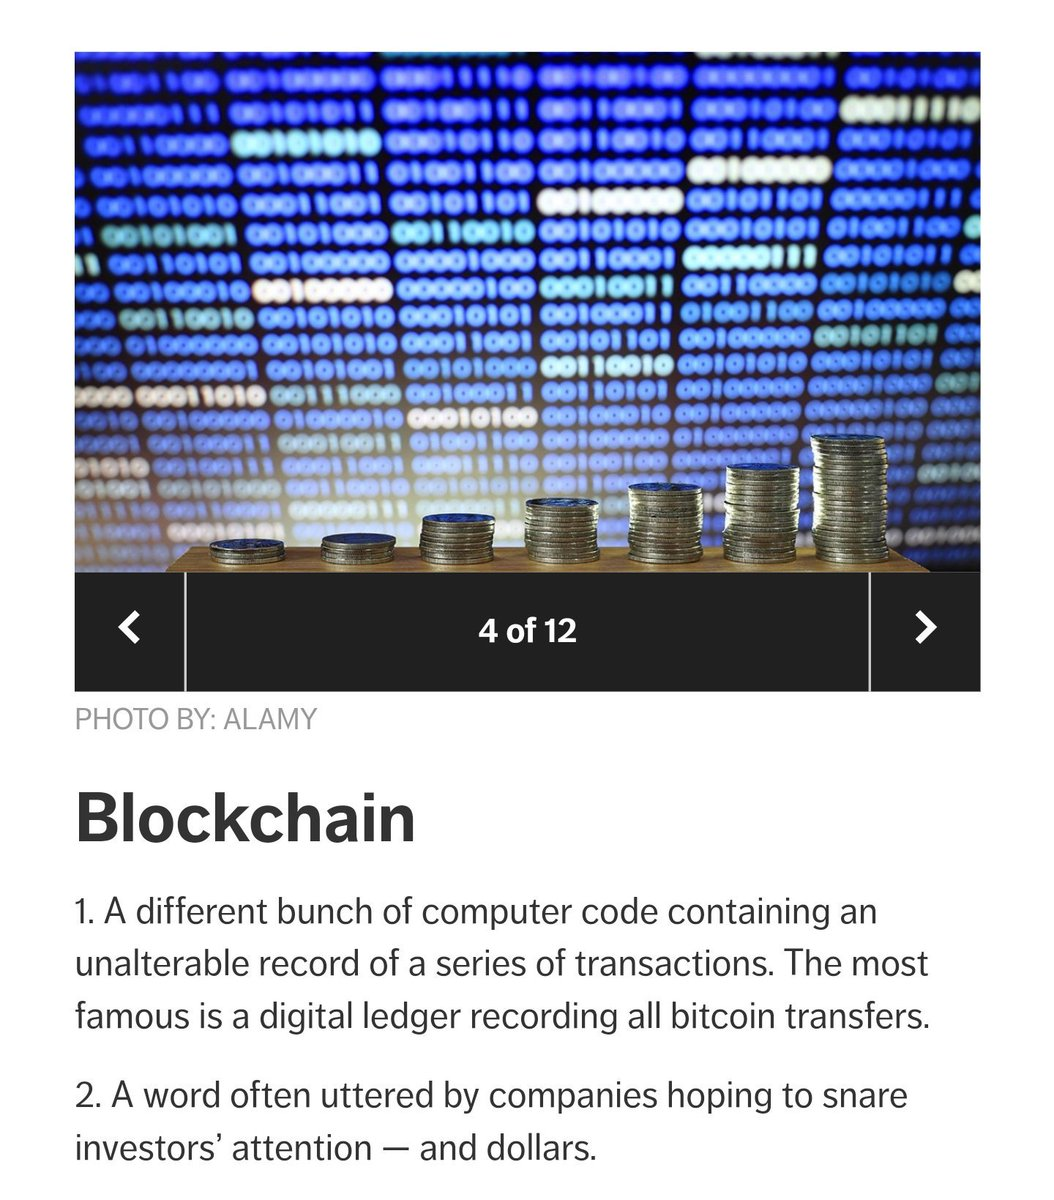 blockchain definitions from AARP magazine